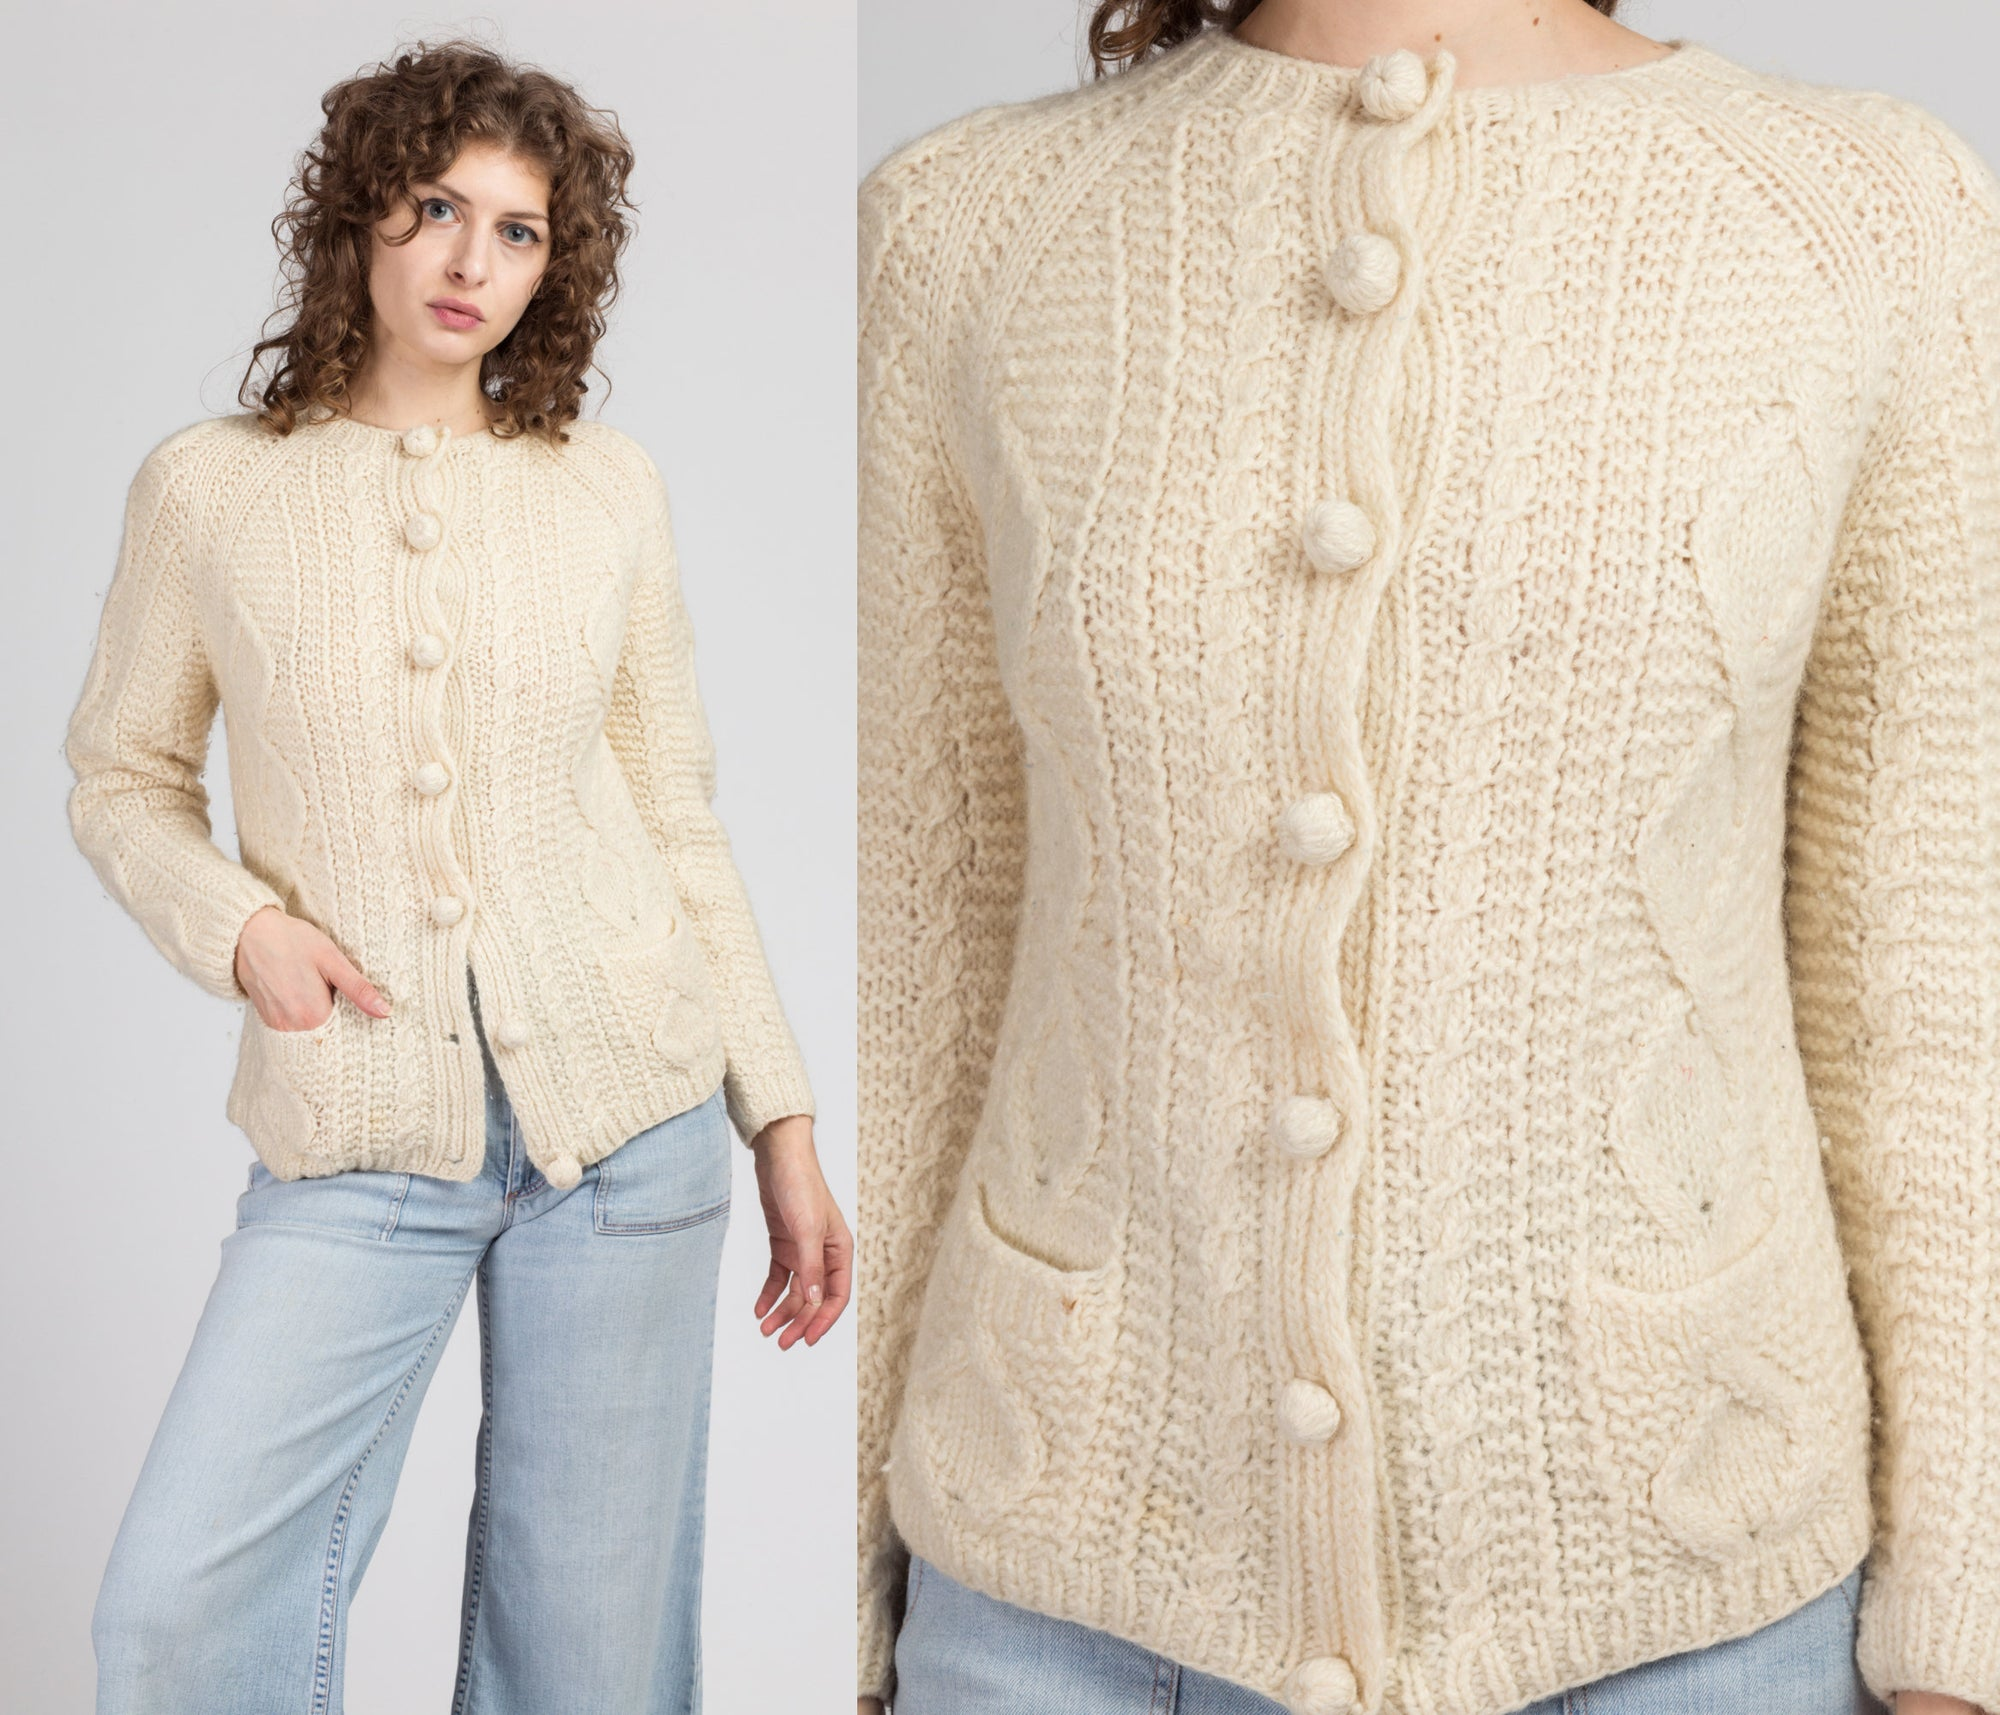 70s Cream Cable Knit Cardigan - Small to Medium